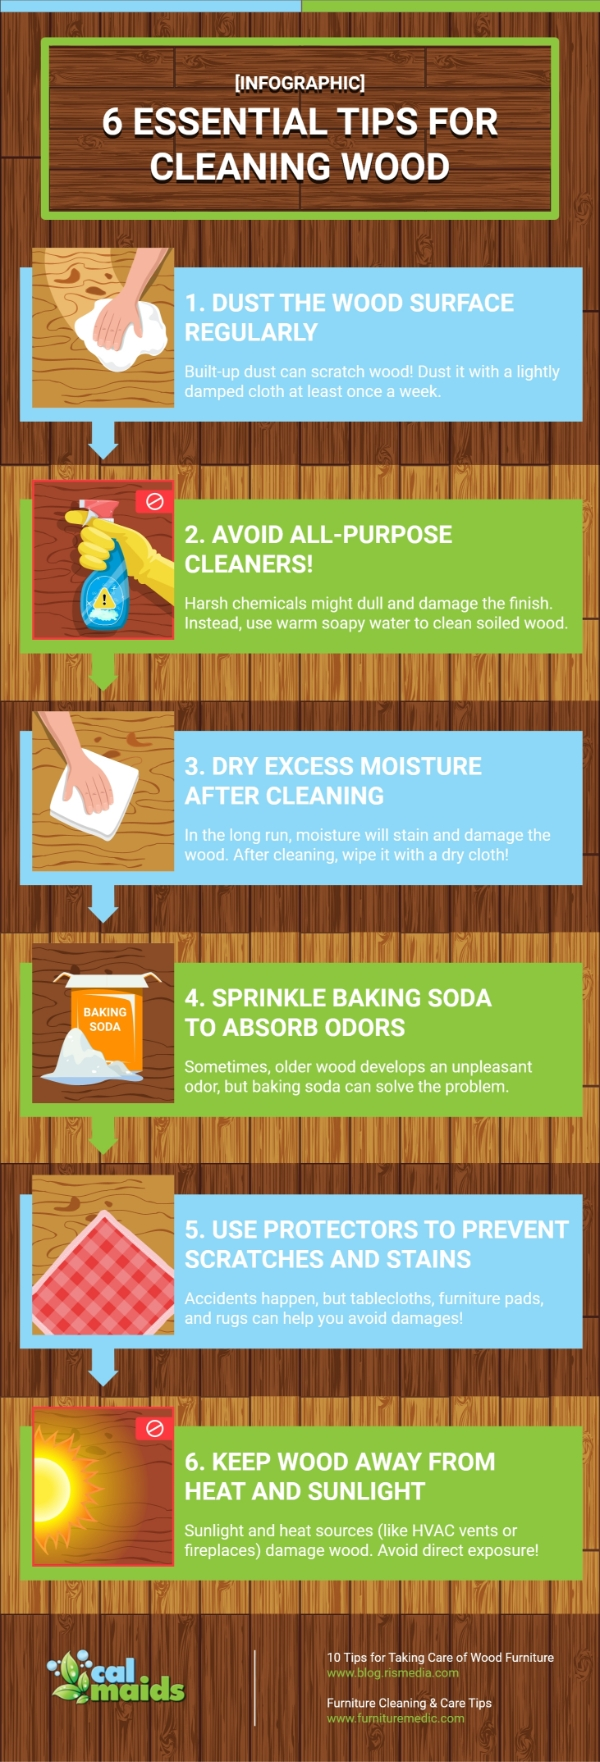 CalMaids - [Infographic] 6 Essential Tips For Cleaning Wood